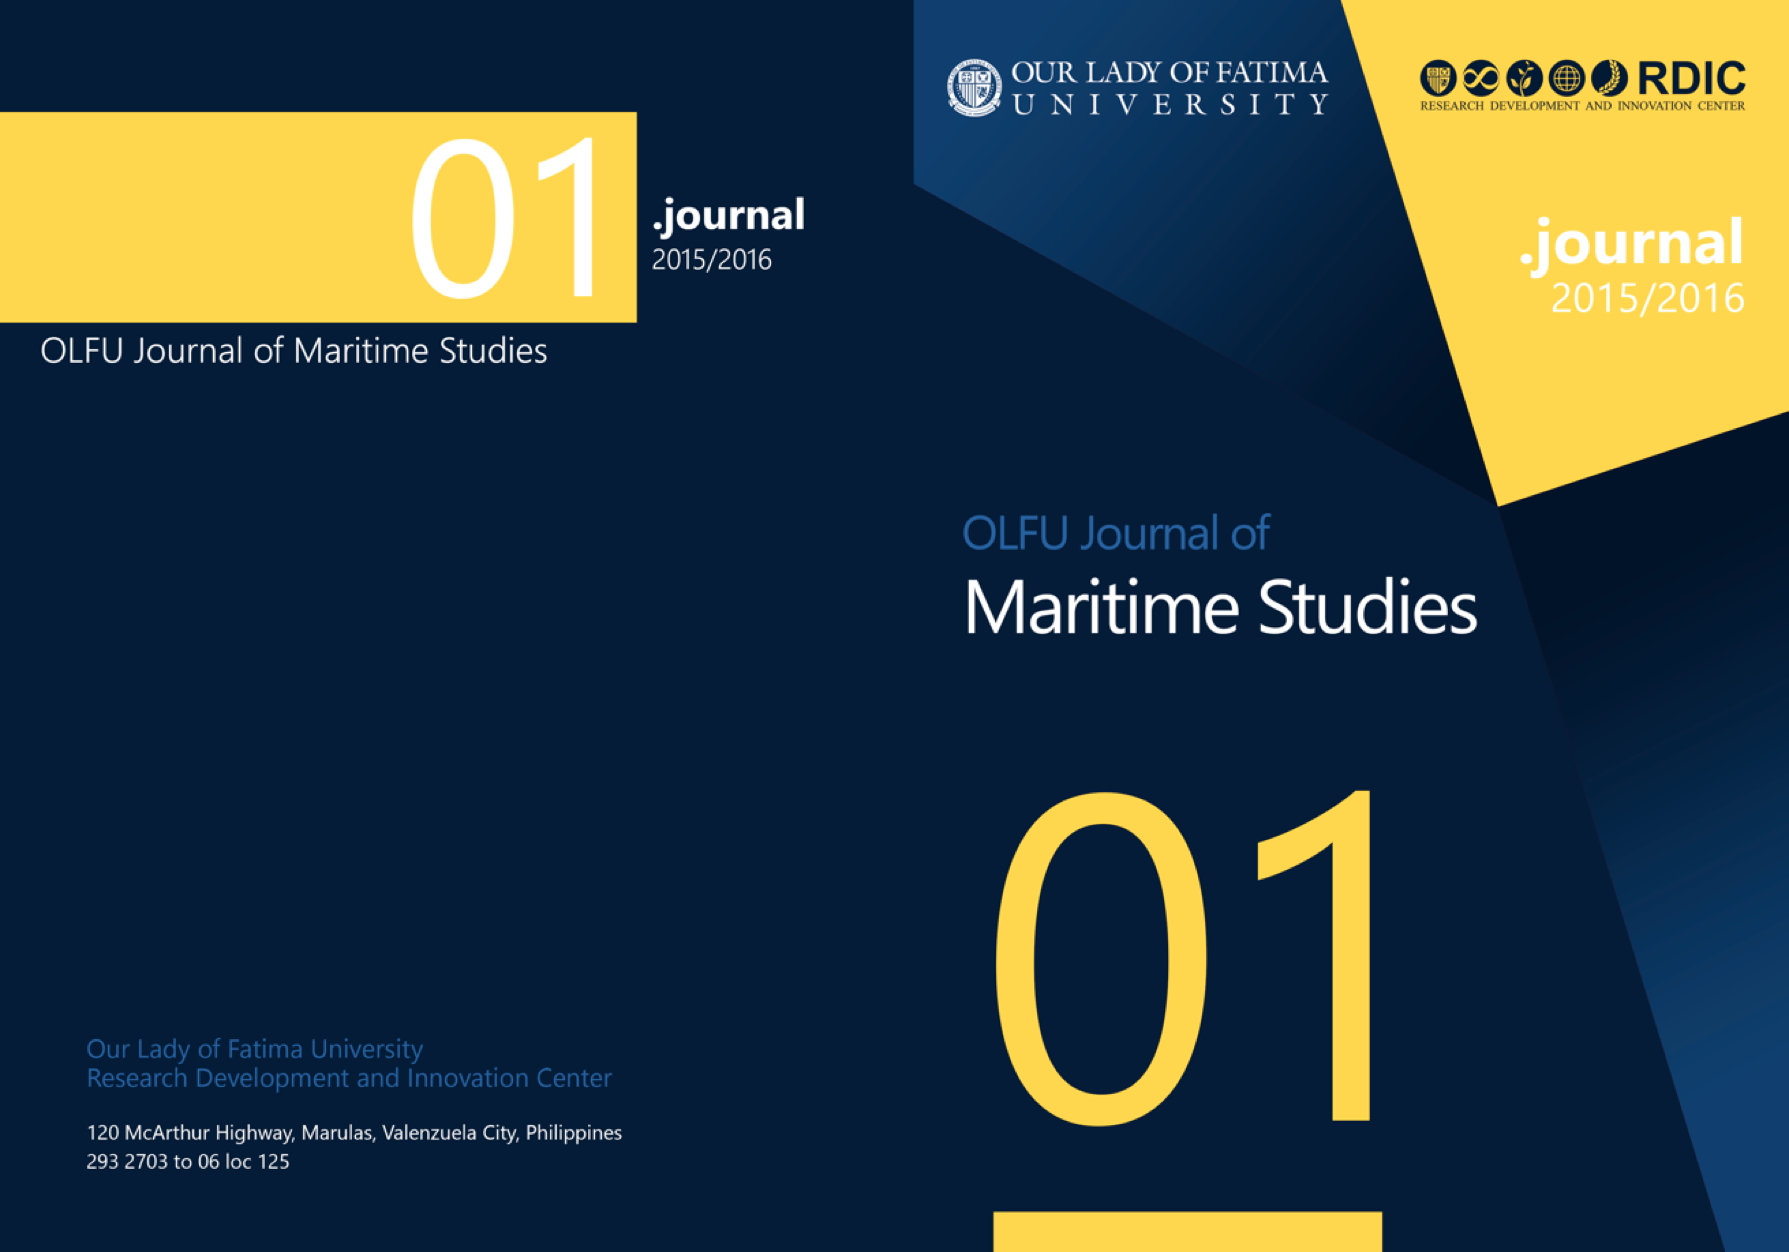 OLFU JOURNAL OF MARITIME STUDIES